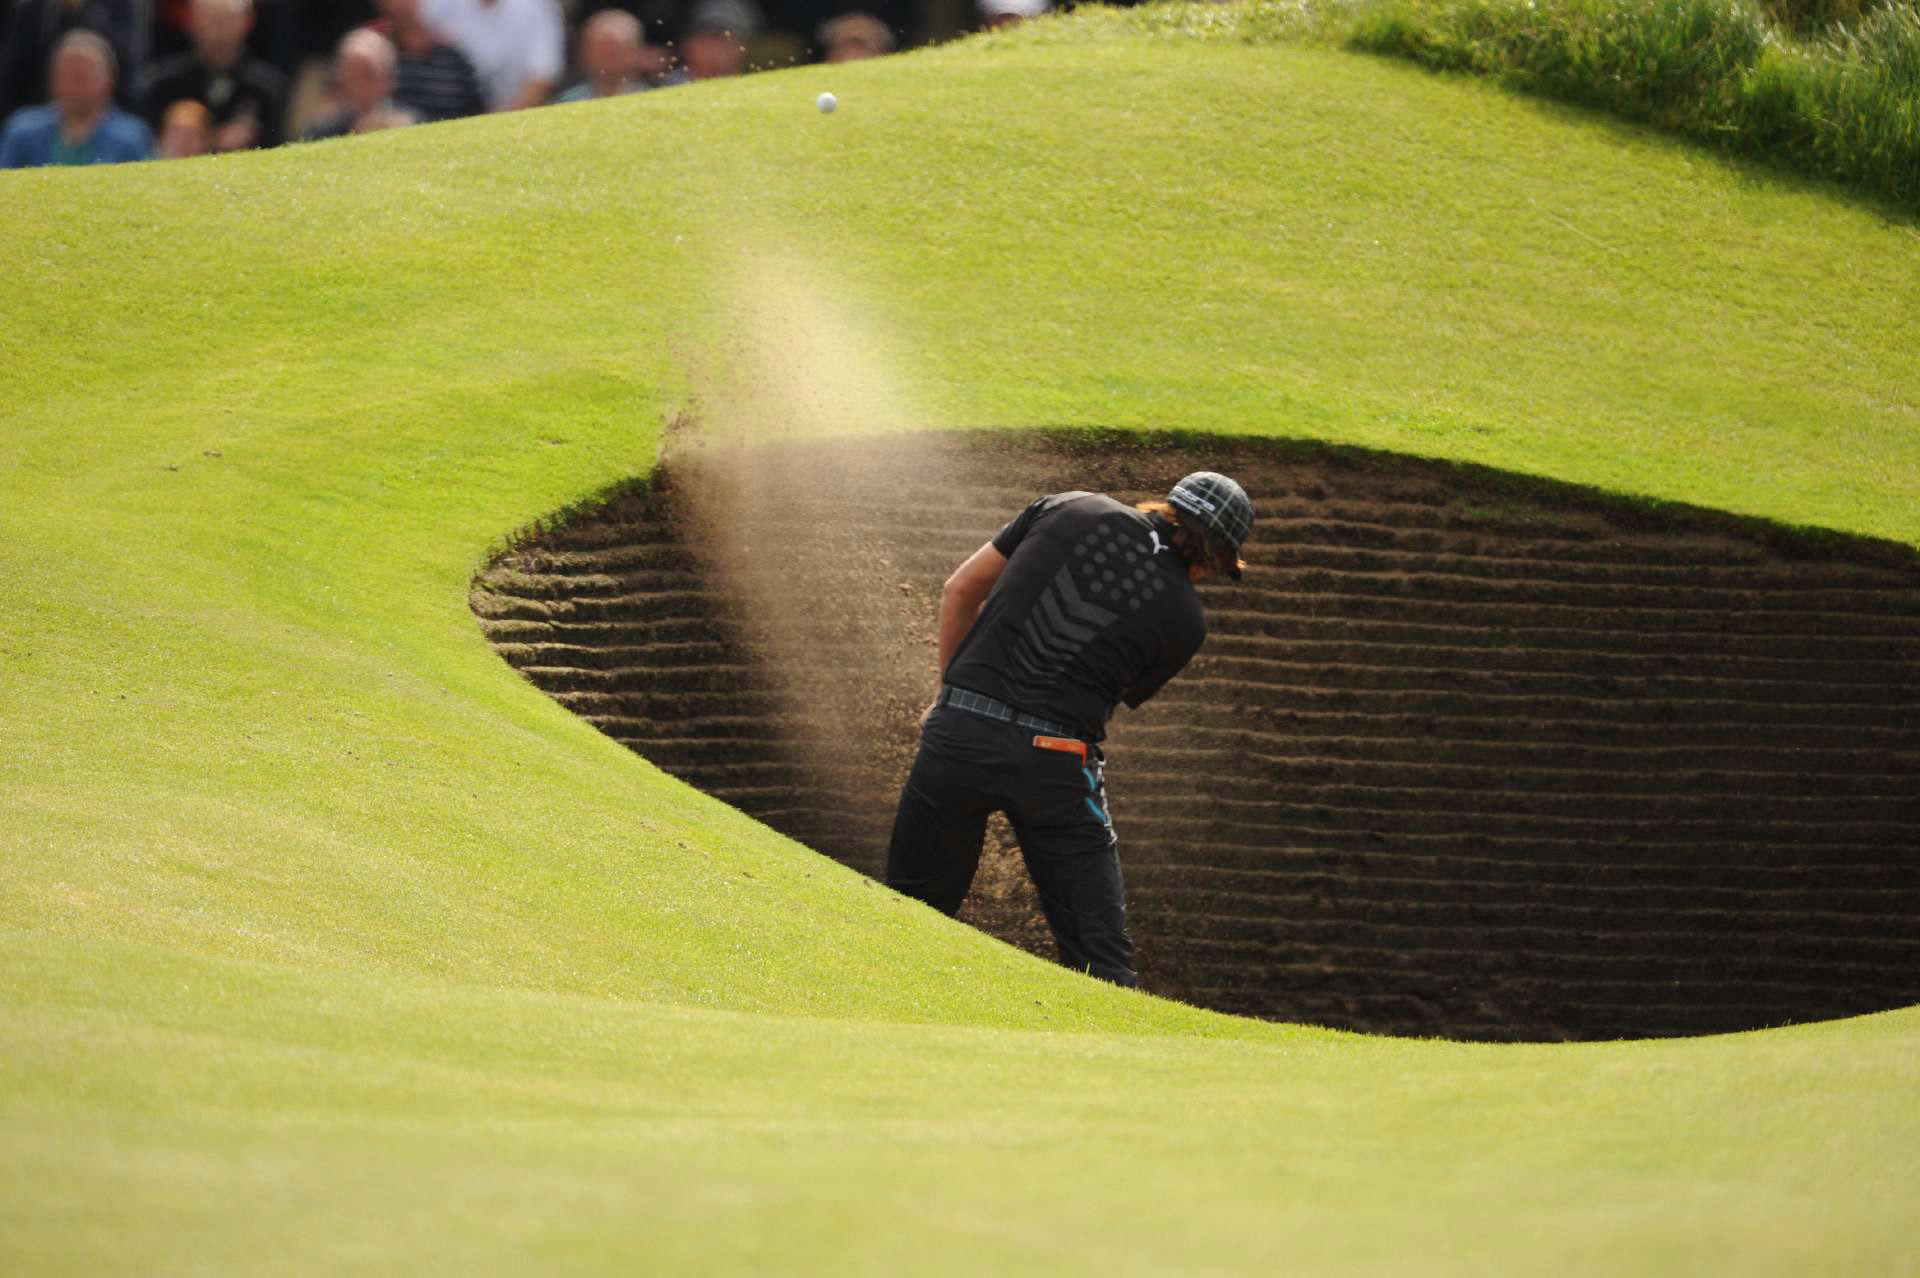 Rickie Fowler found one of the 206 bunkers at Royal Lytham and St. Annes on Friday. He shot 72 and is three over.